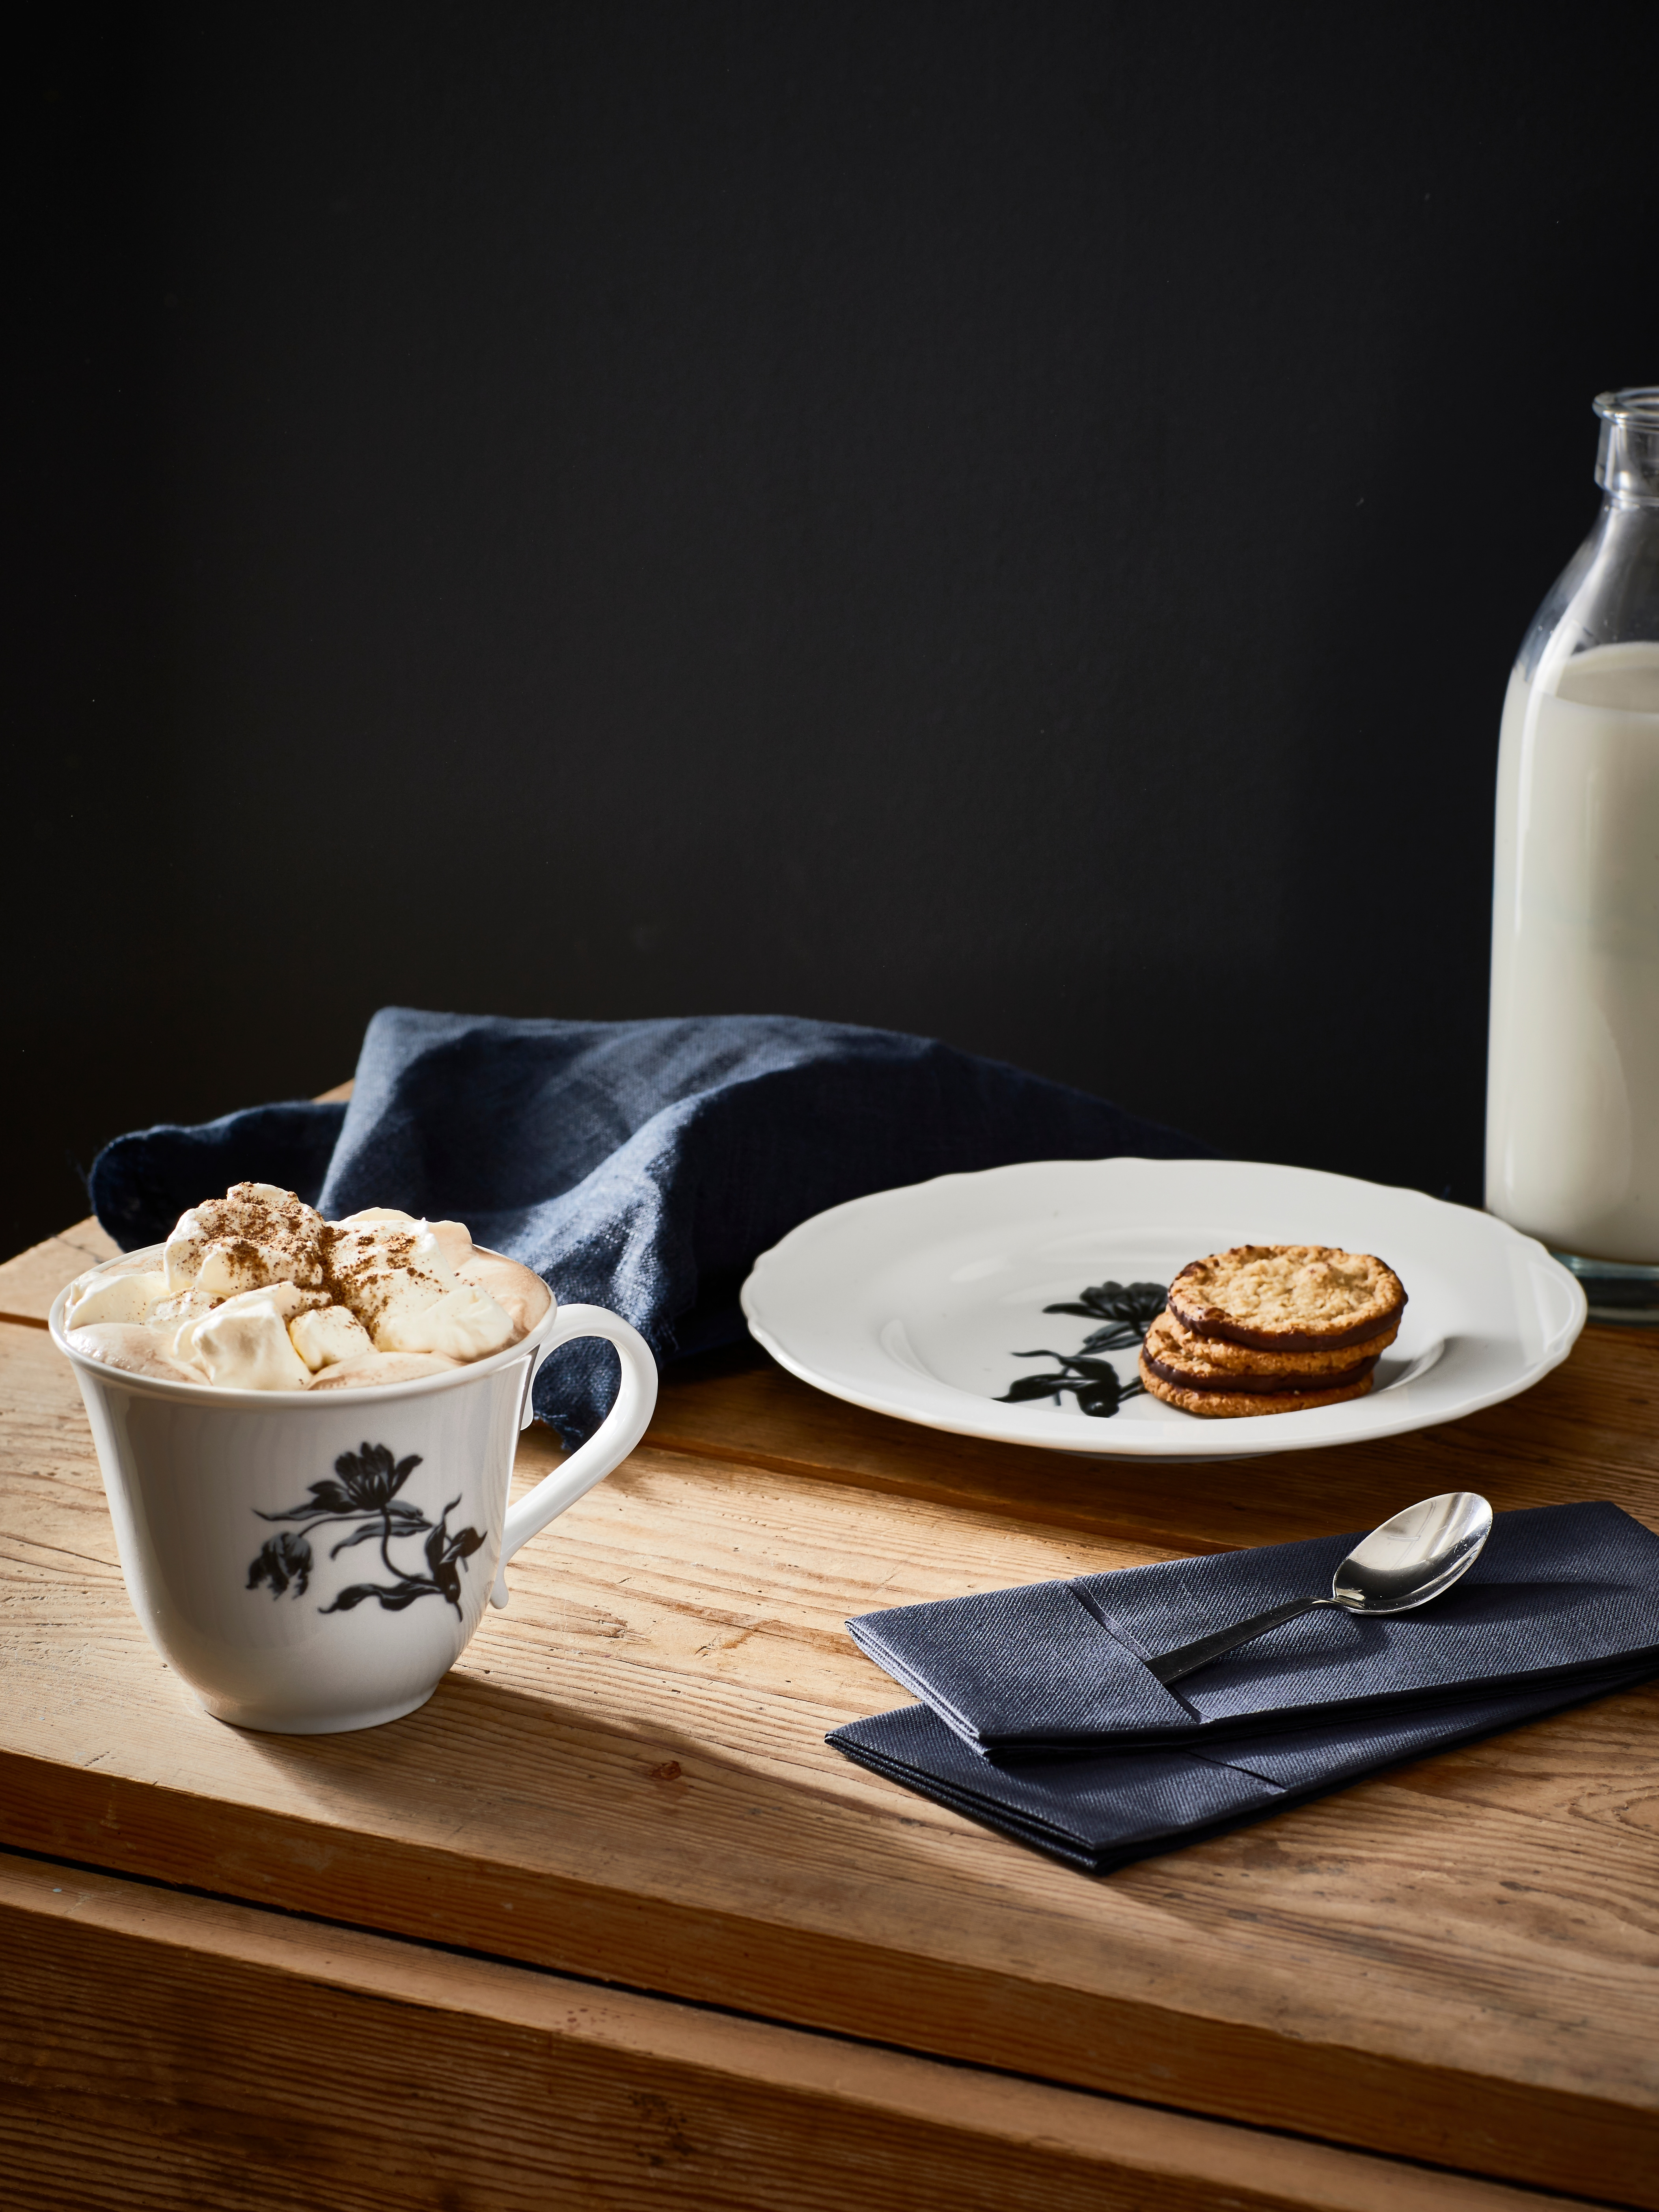 UPPLAGA porcelain cup and saucer set with whipped cream and cookies on a wooden table with milk bottle, spoon and napkins.